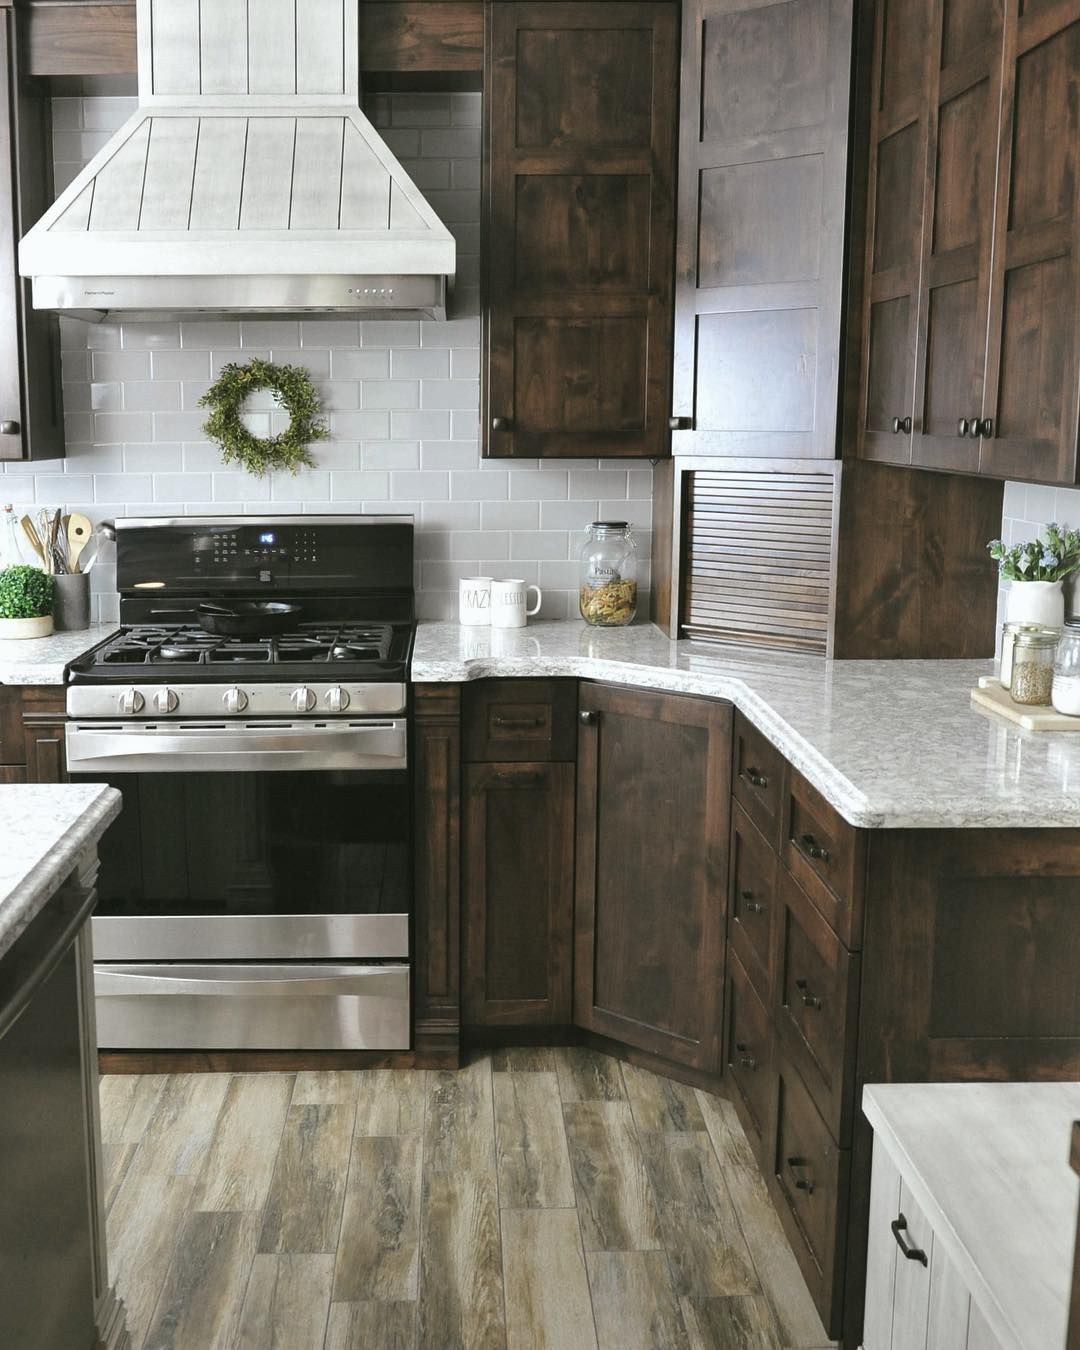 Pin By Tina Taylor On Shiplap: Dark Alder Custom Cabinets With Quartz Countertops And